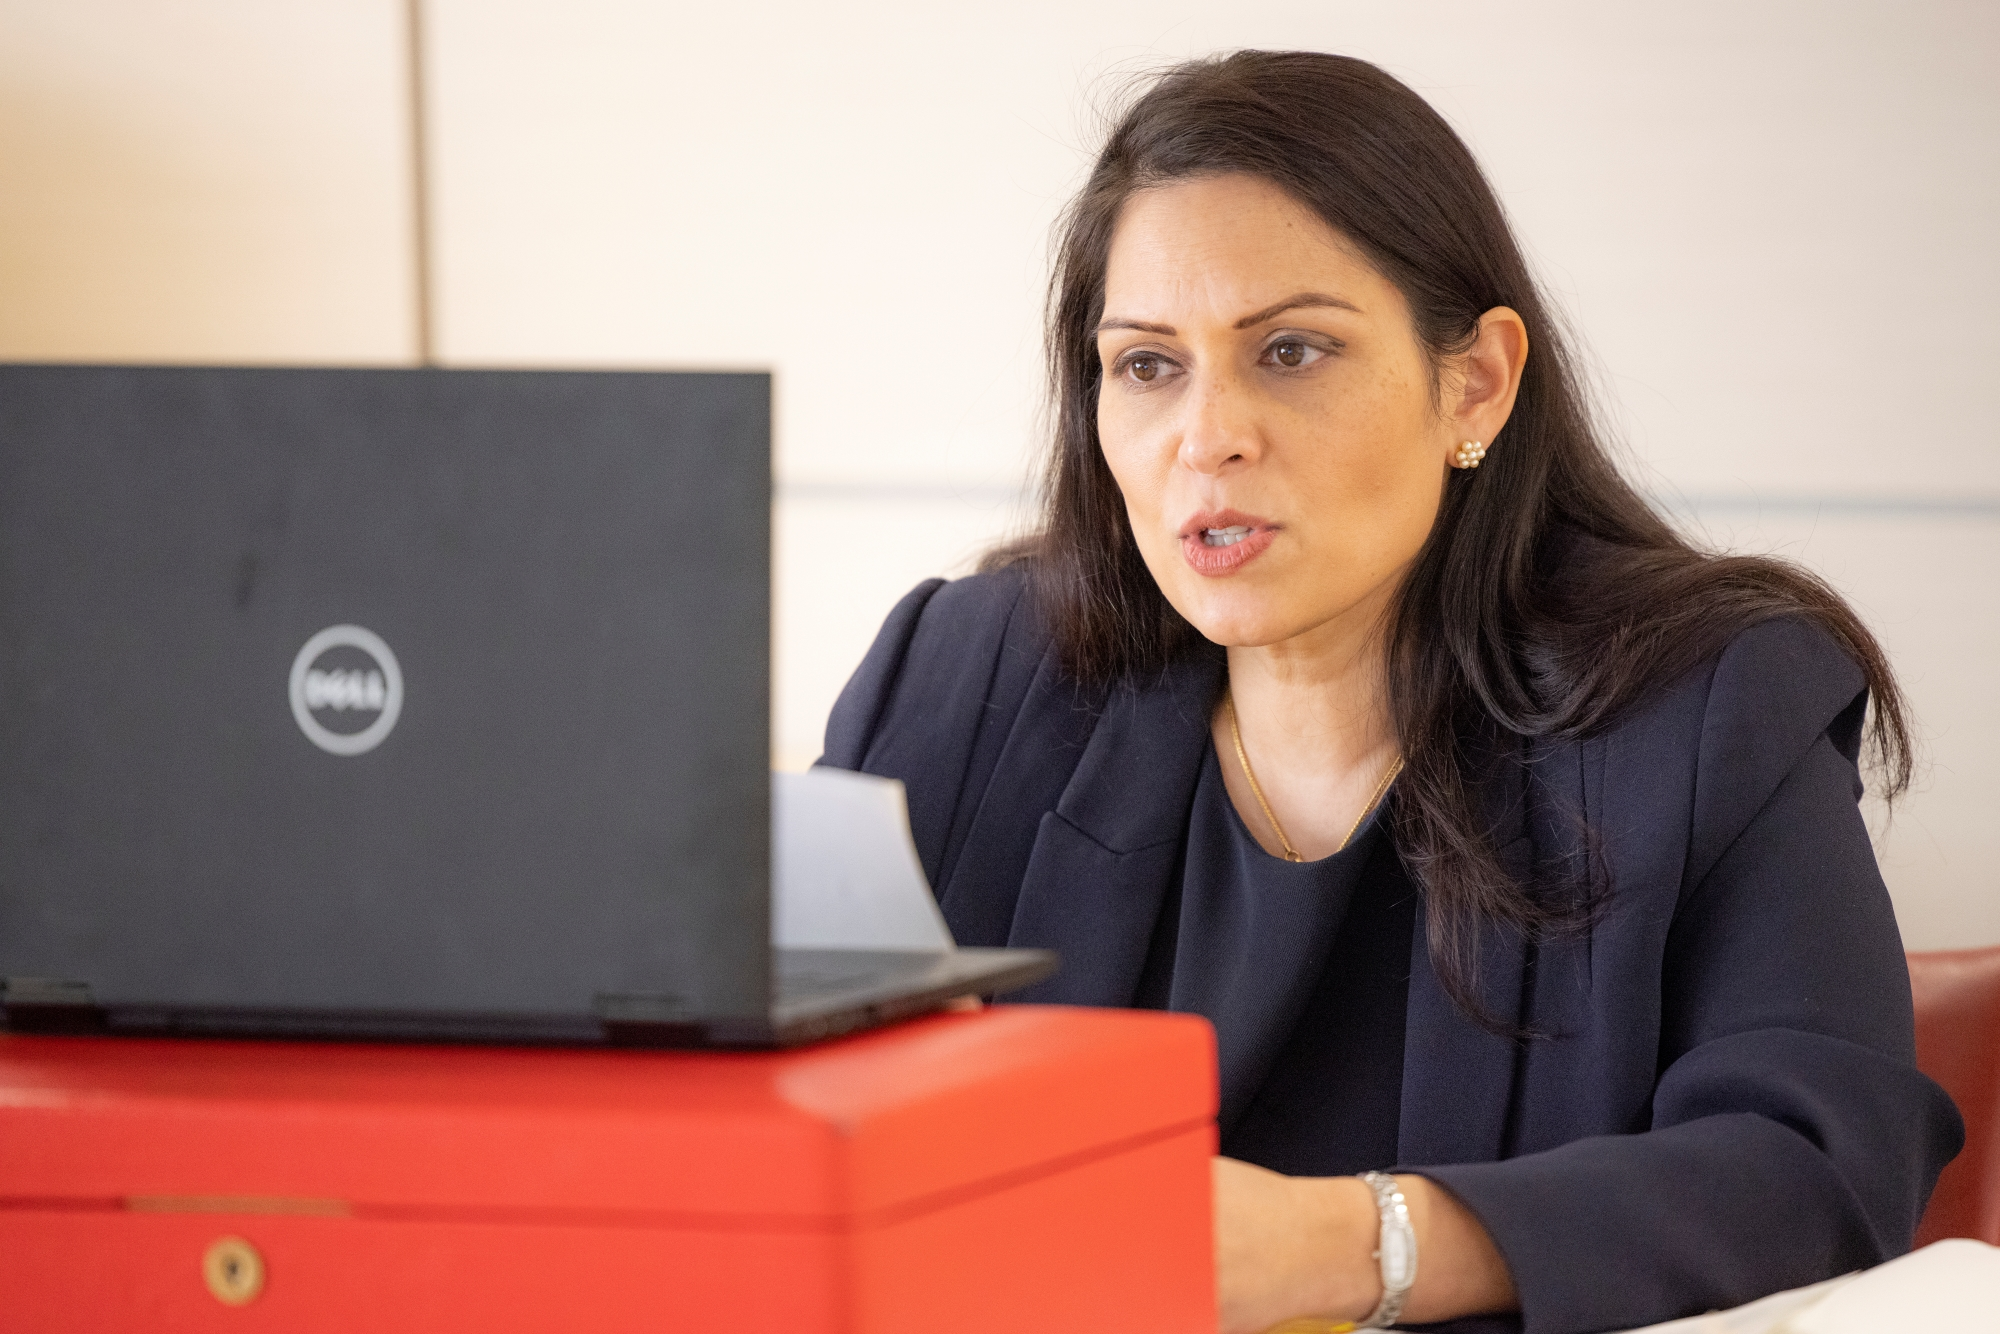 Don't pay out to ransomware gangs, says UK Home Secretary Priti Patel